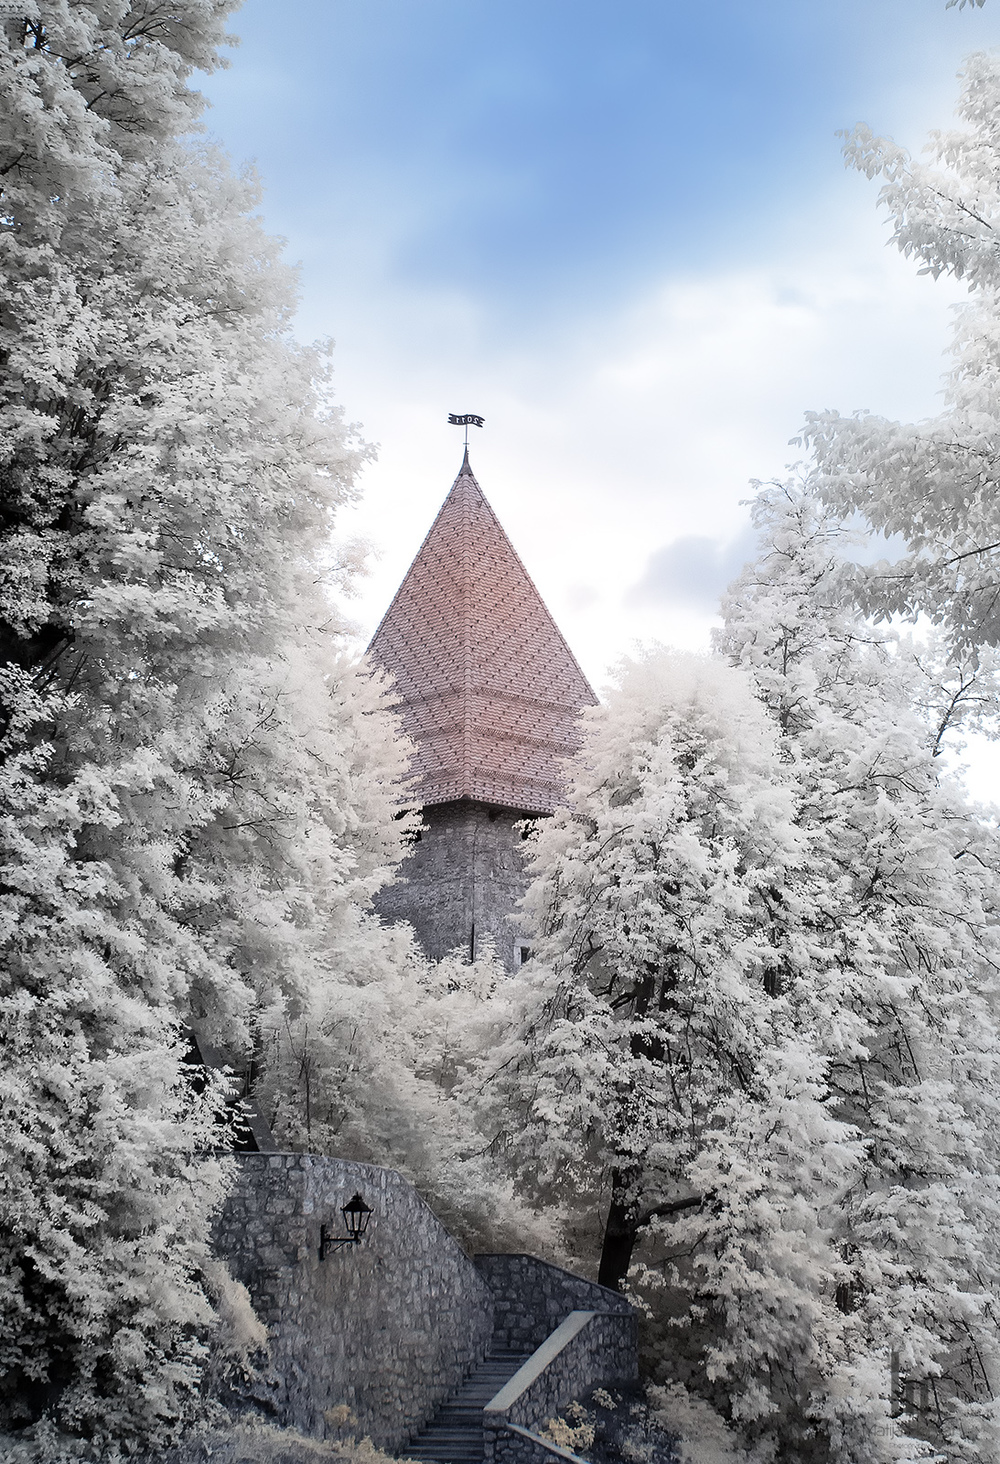 Watch Tower in Kranj